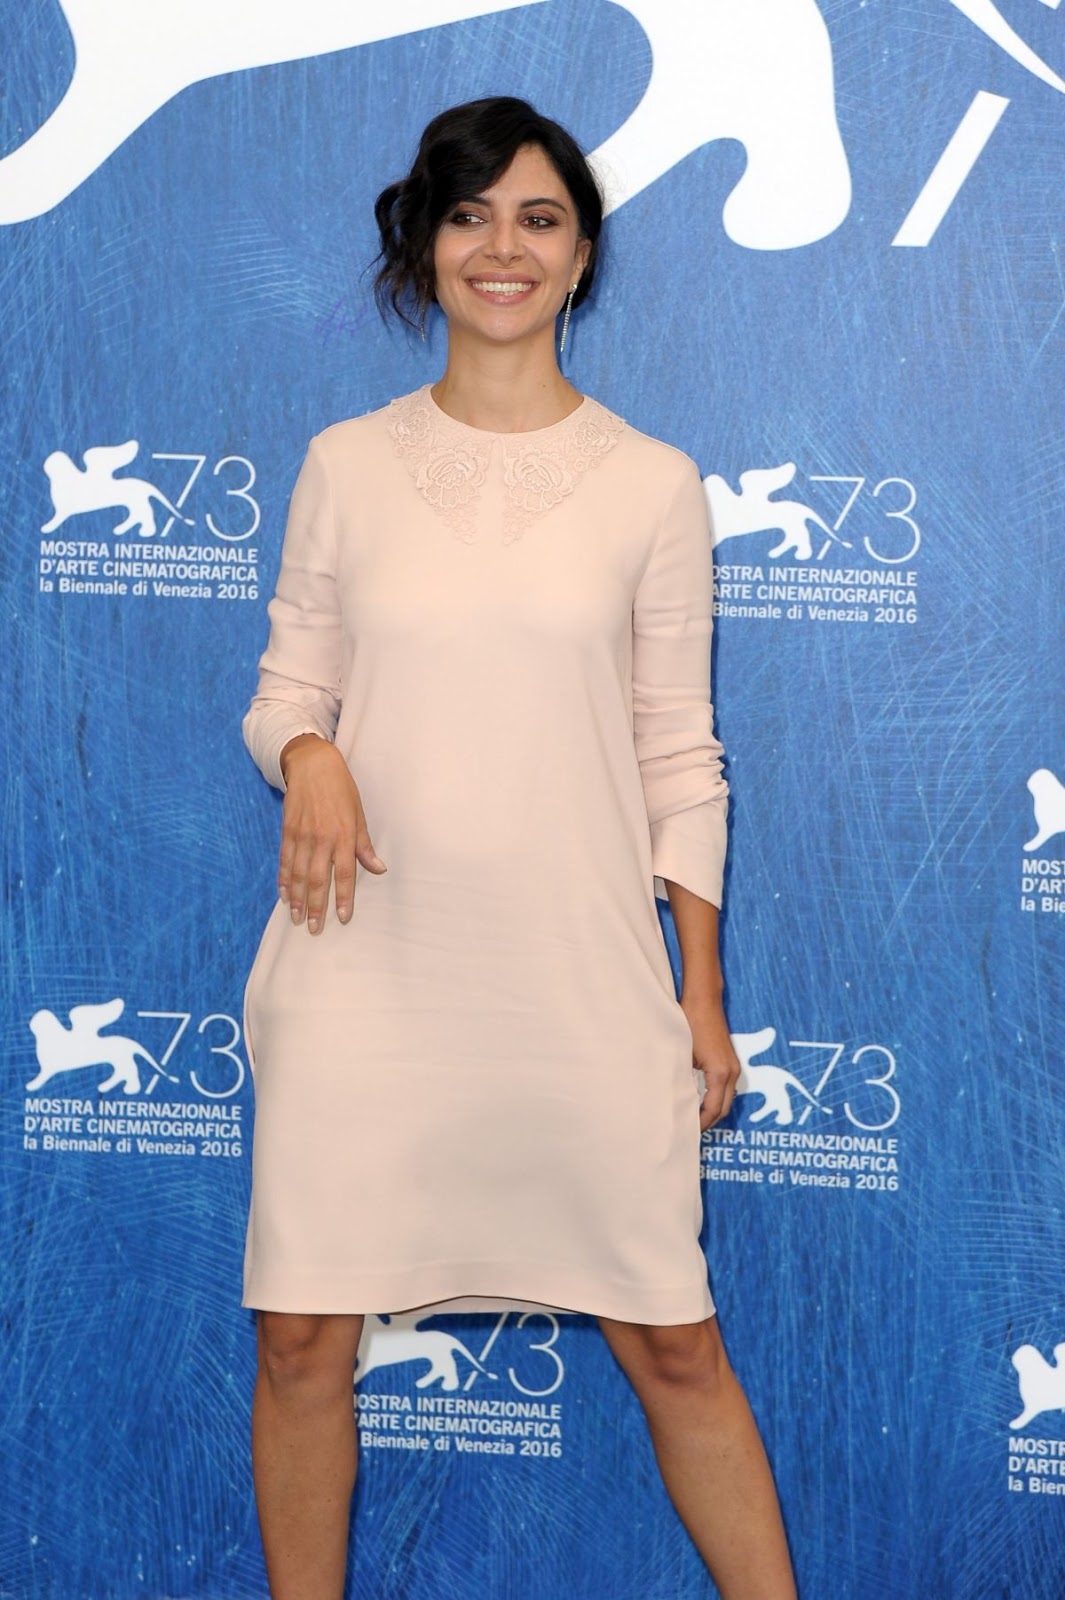 HQ Photos of Claudia Potenza At Monte Photocall At 73rd Venice Film Festival